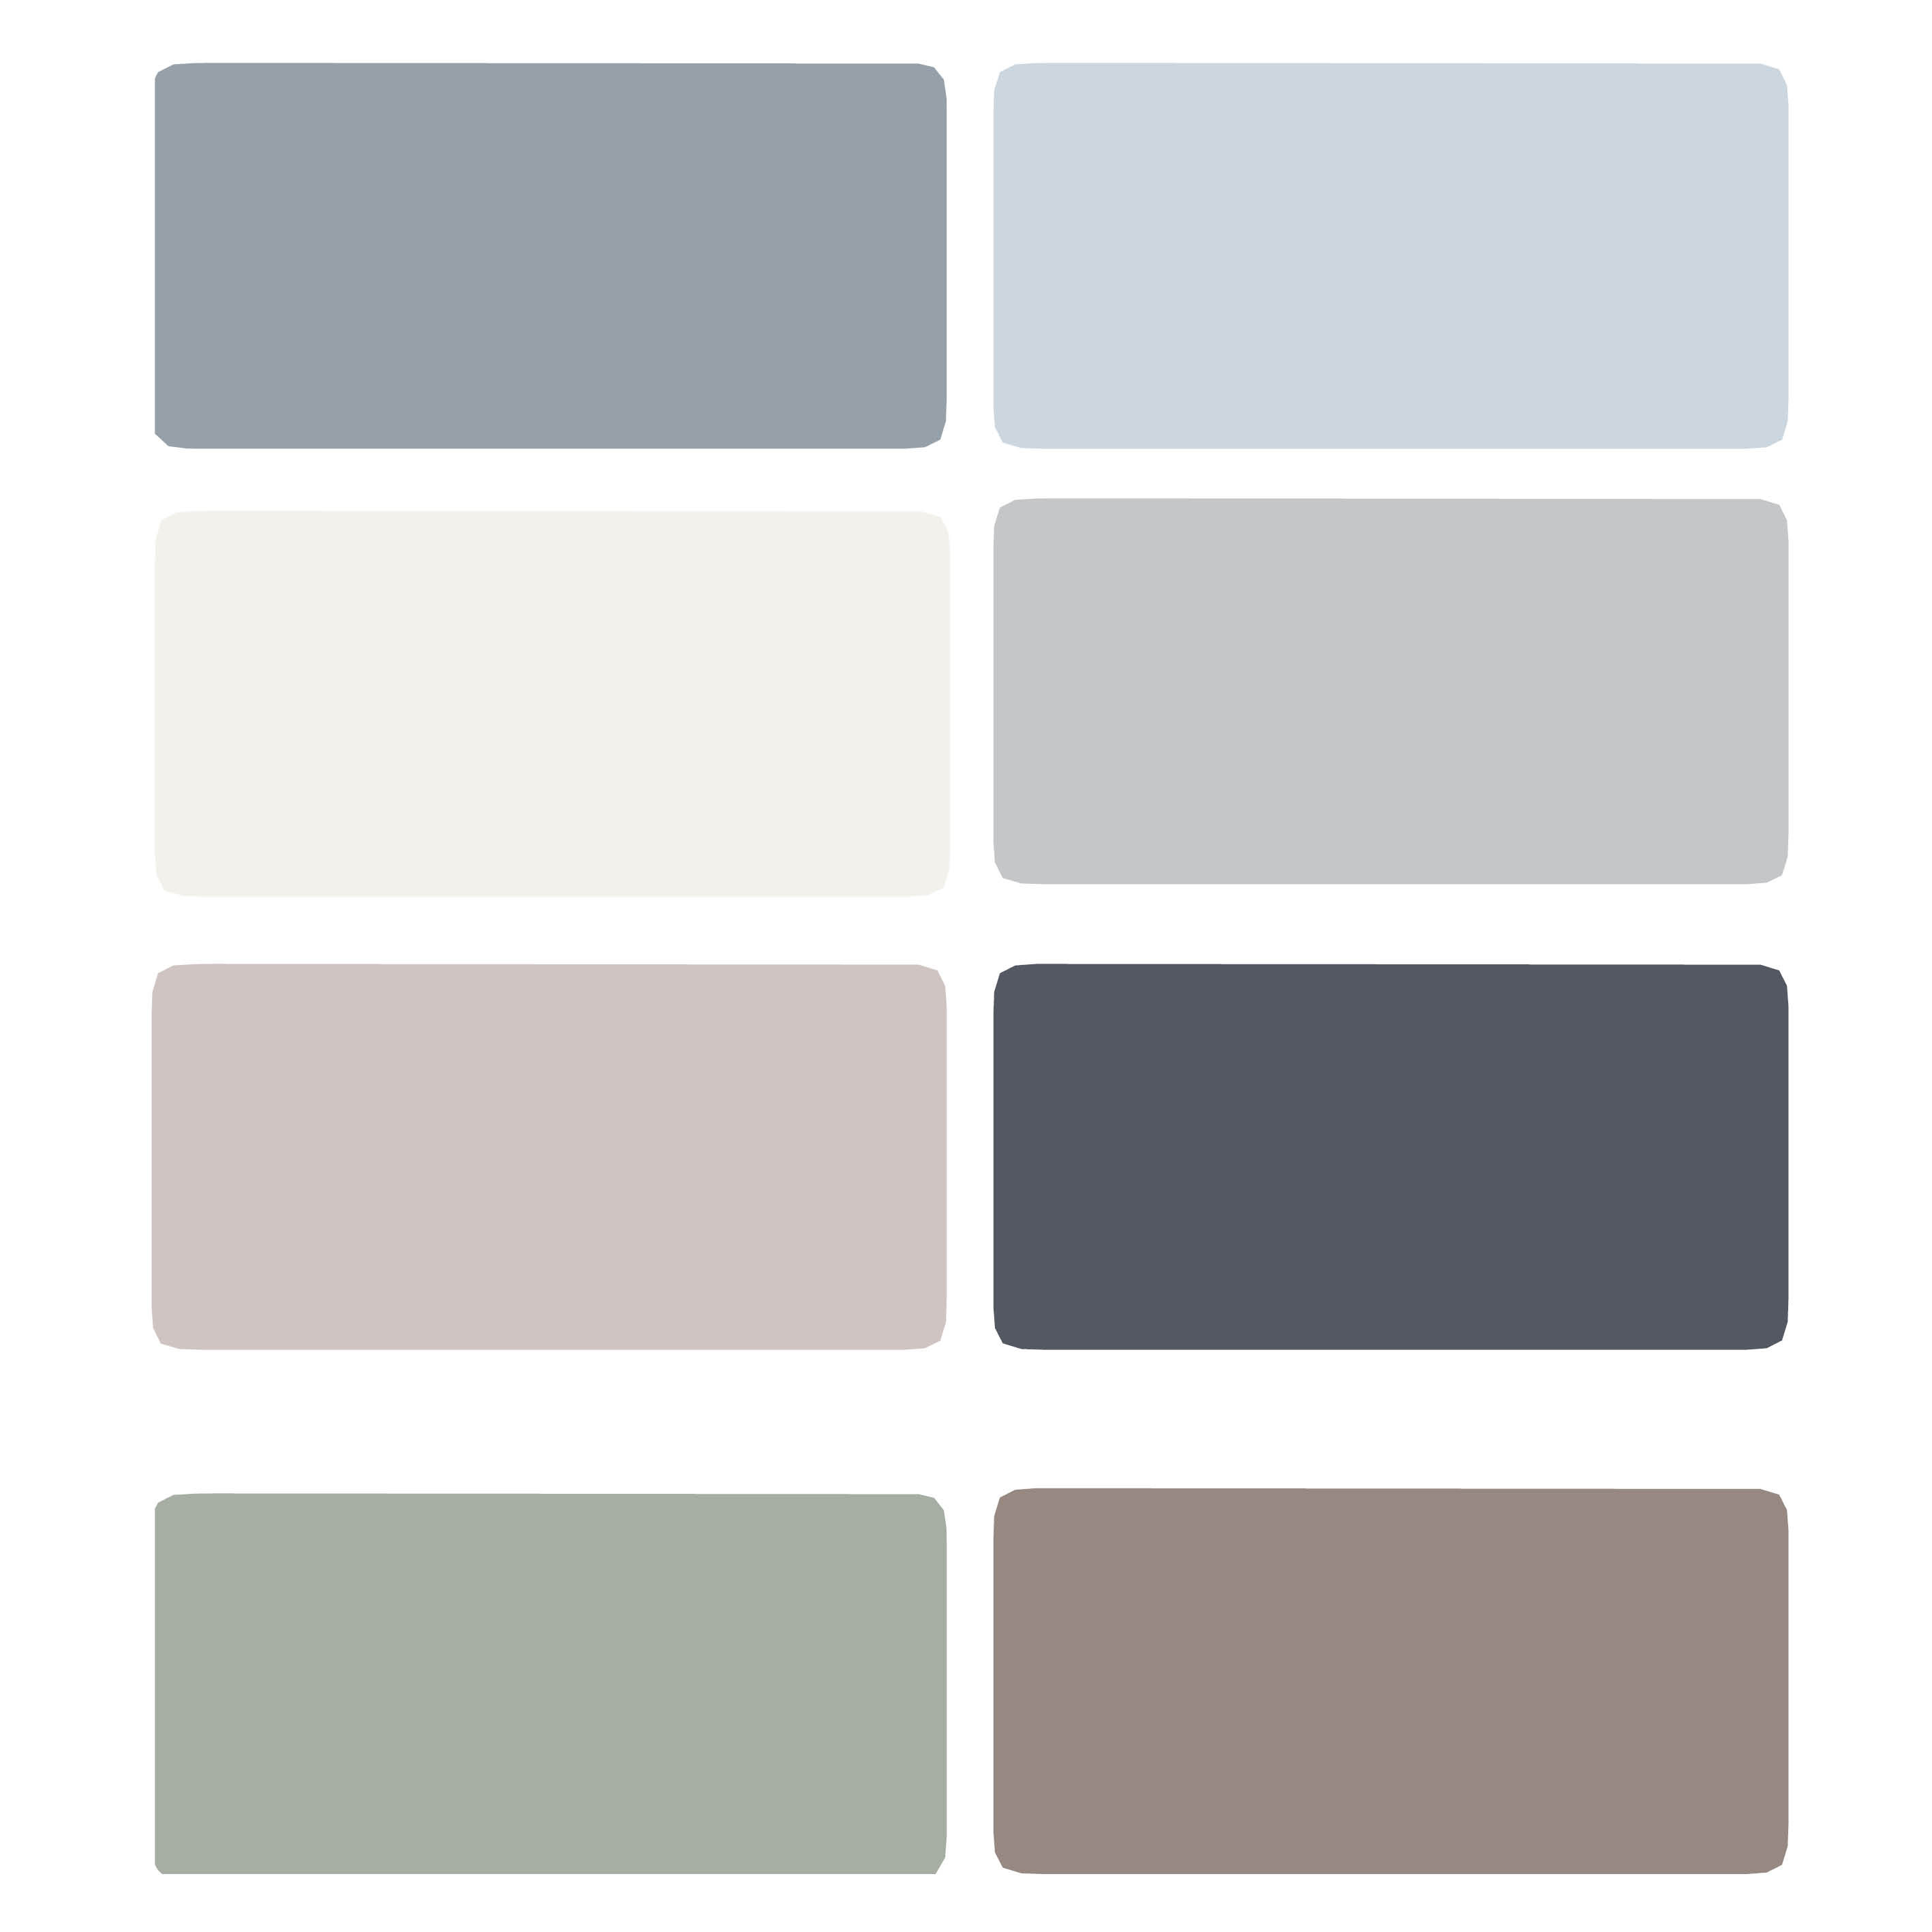 Best ideas about Light Grey Paint Colors . Save or Pin Oh the Painting We'll Do… – Keeps on Ringing Now.